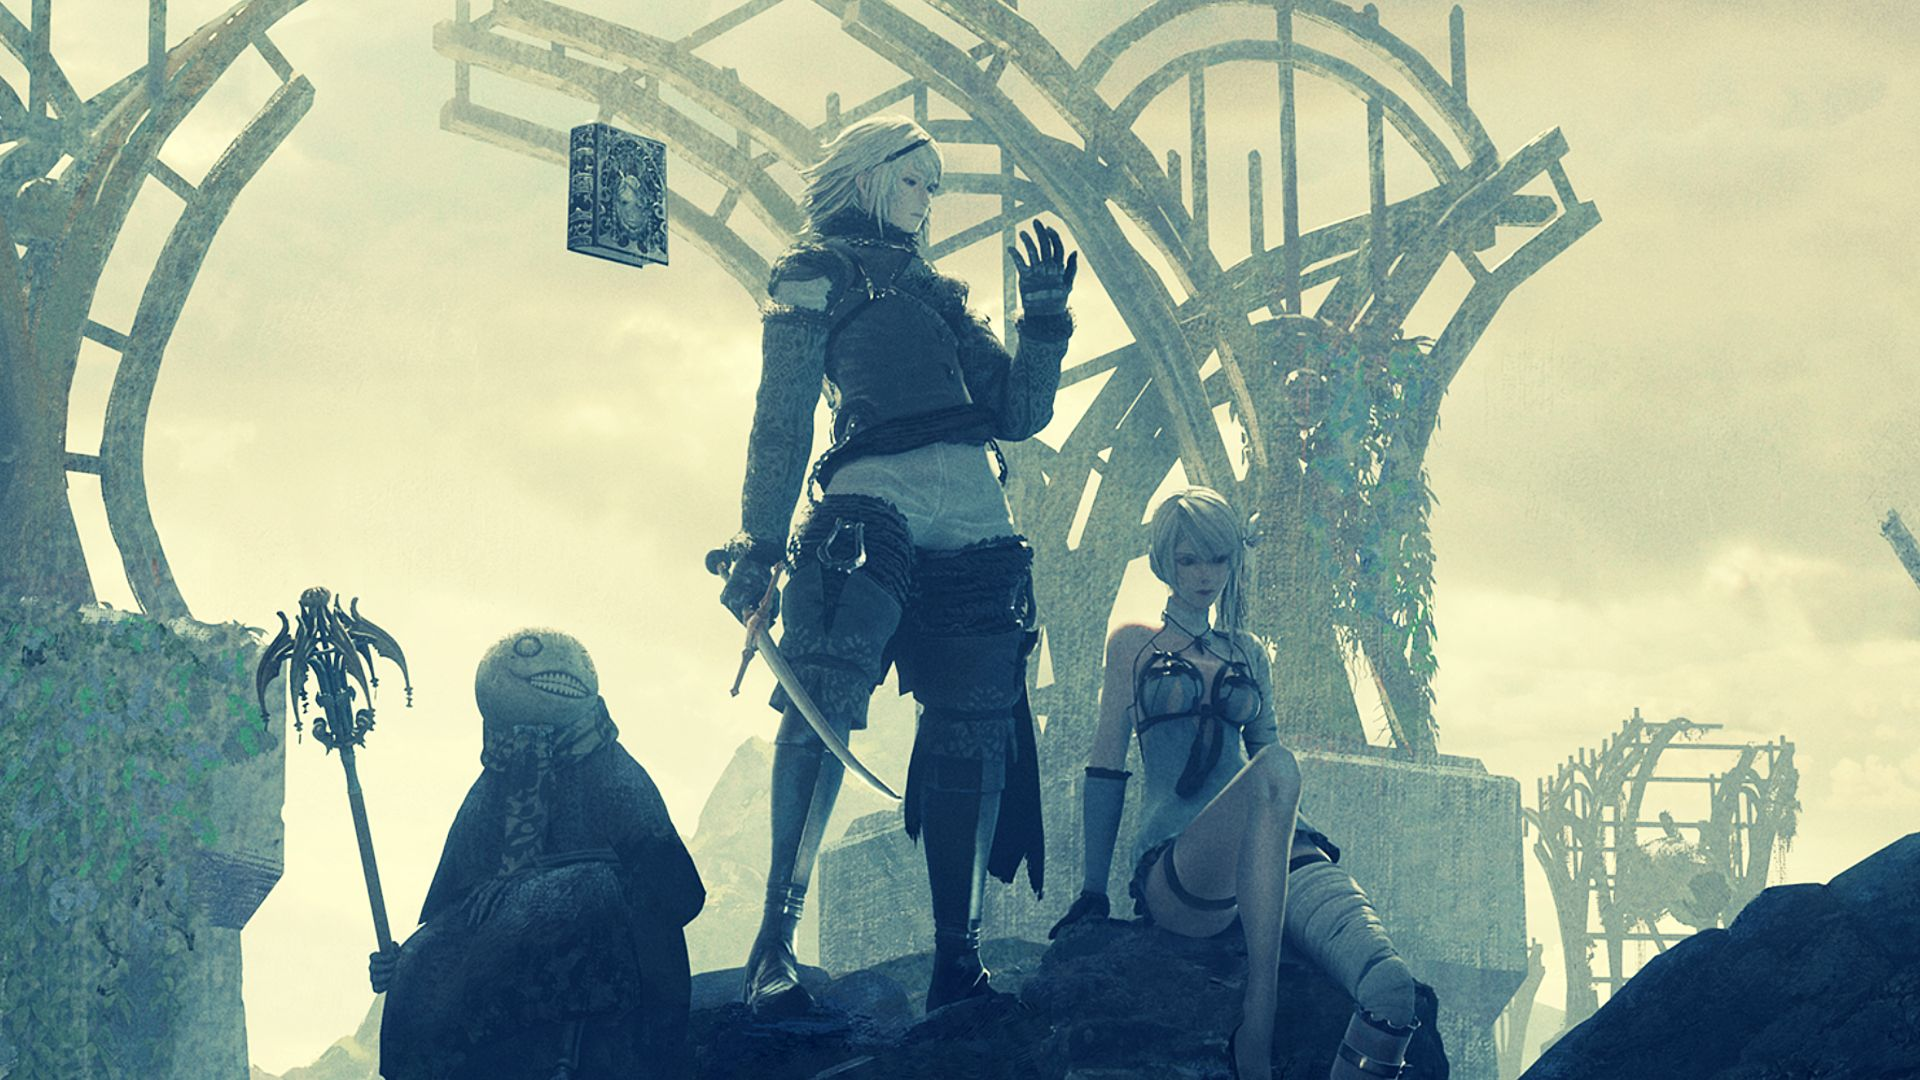 Nier Replicant is a curious throwback to a bygone era